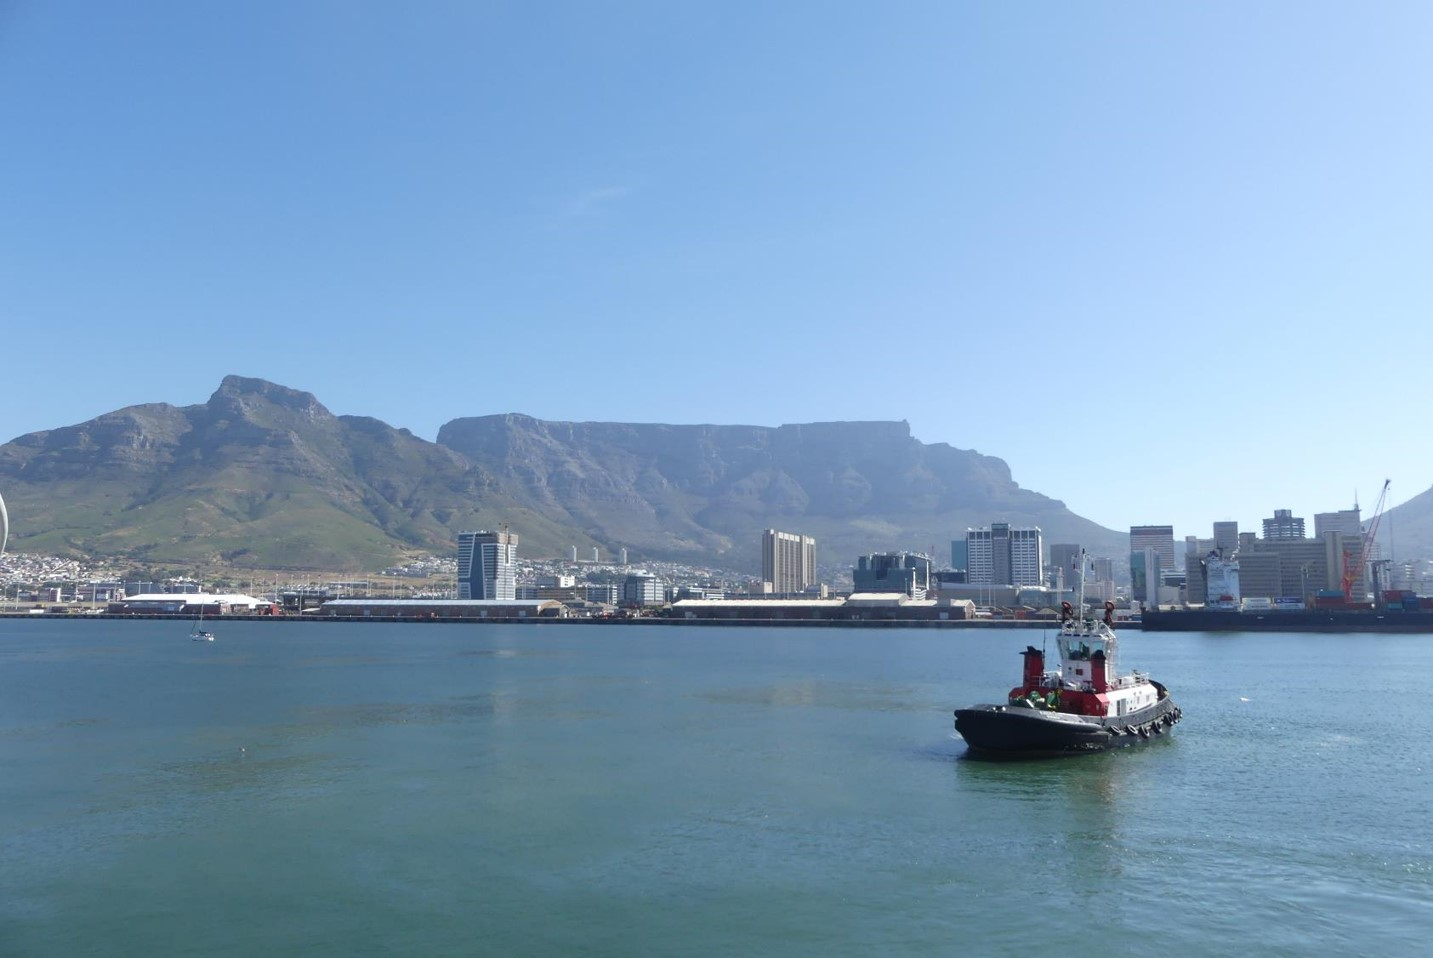 Leaving Cape Town with Table Mountain in the background.